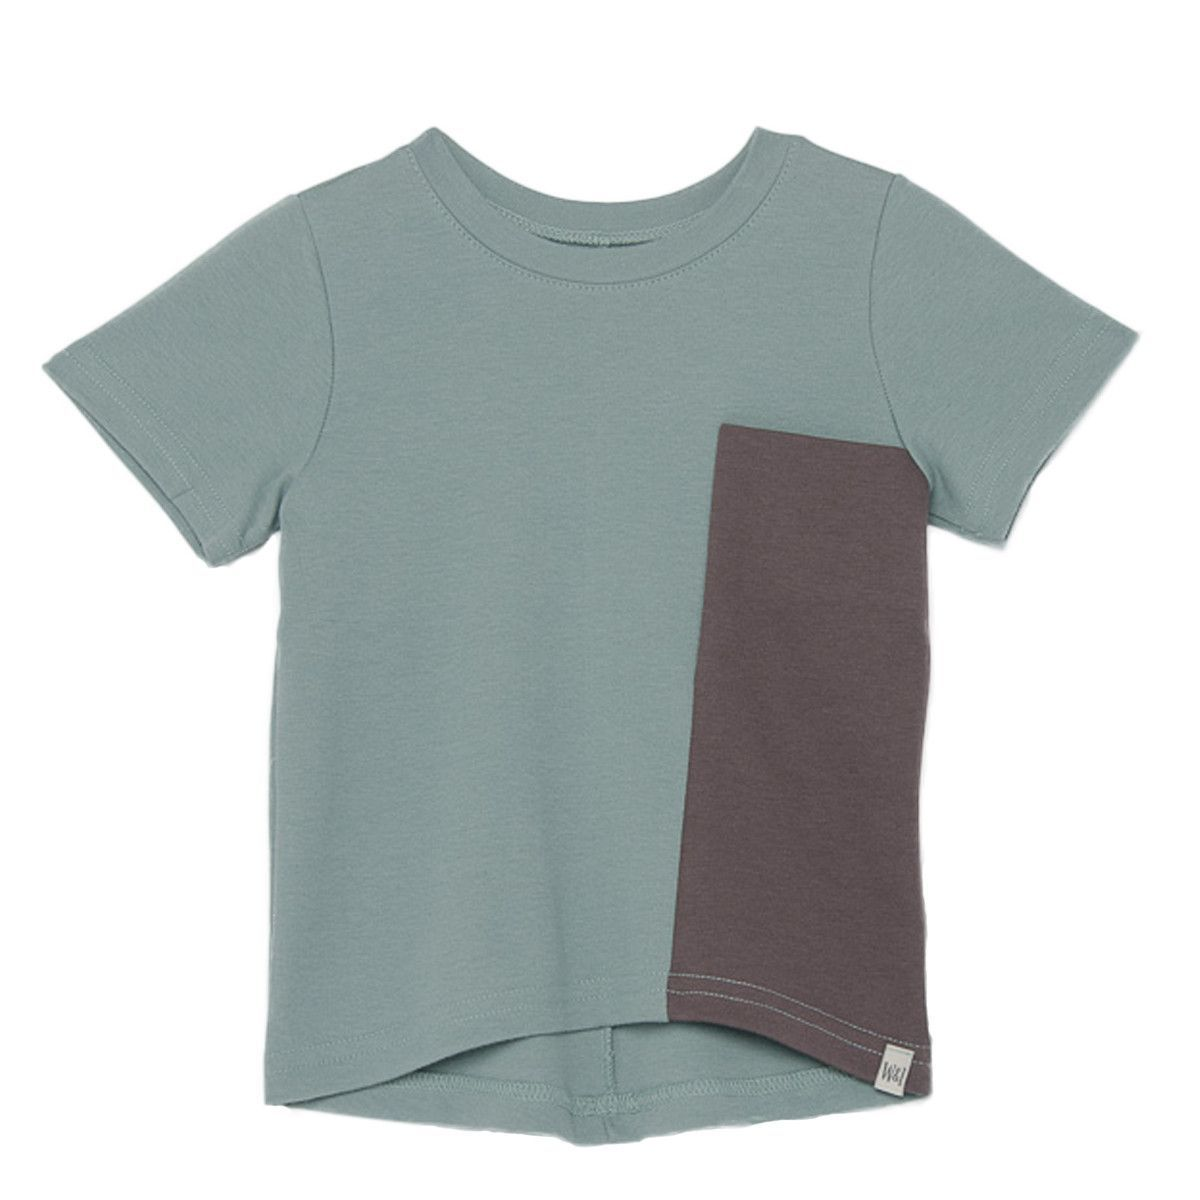 Short Sleeve Drop Back Shirt with Contrast Pocket in Seaport Blue